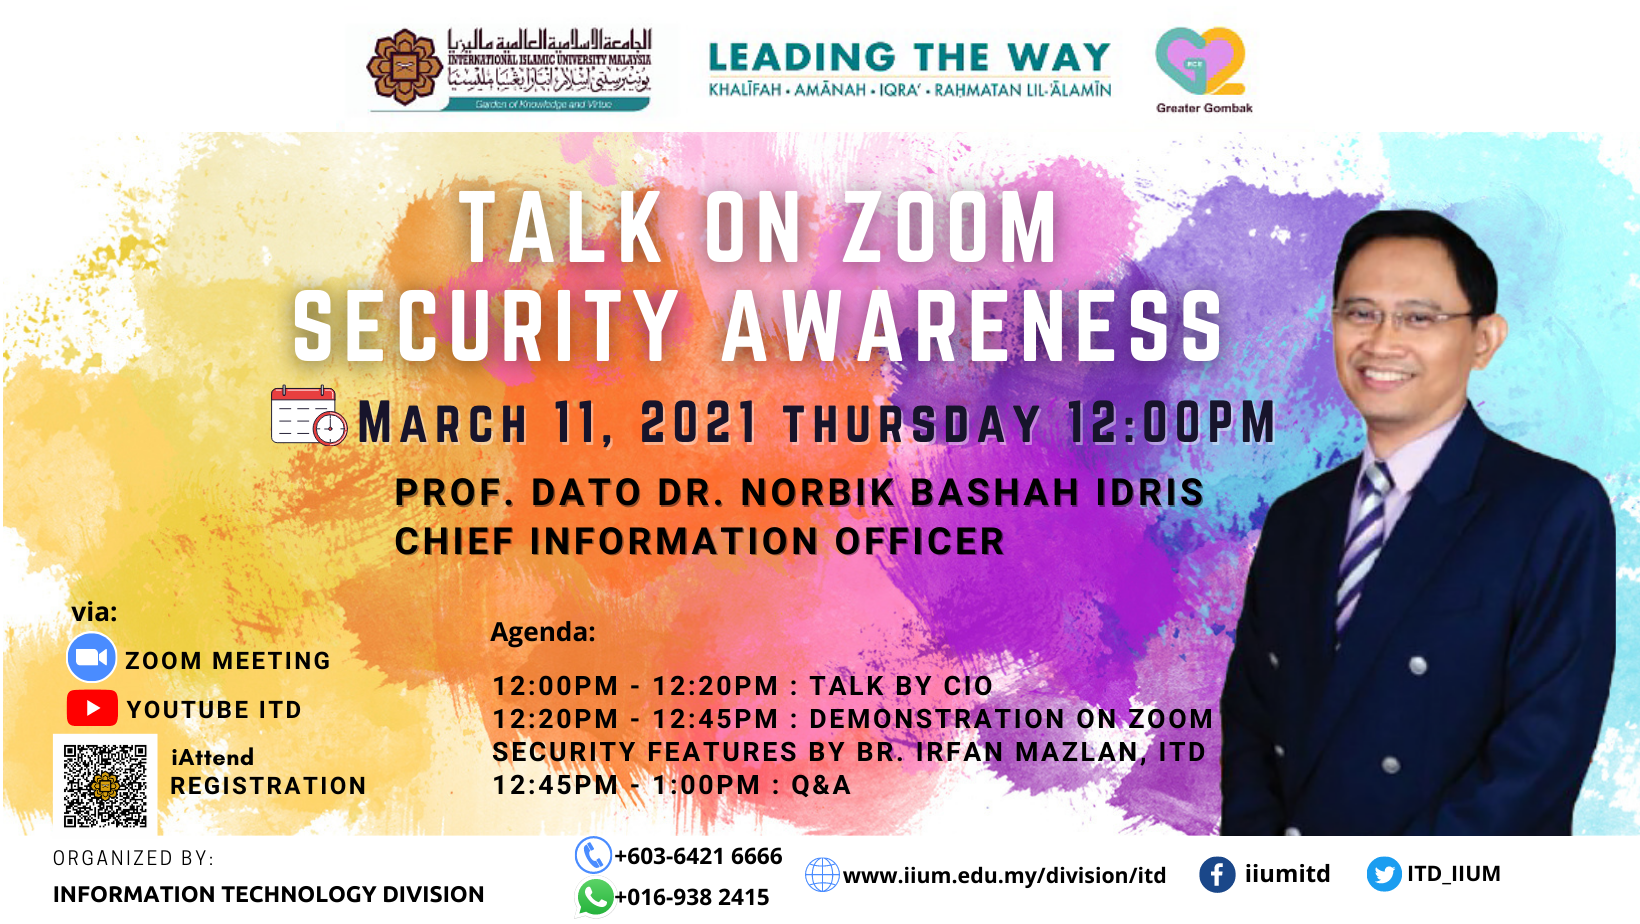 TALK ON ZOOM SECURITY AWARENESS